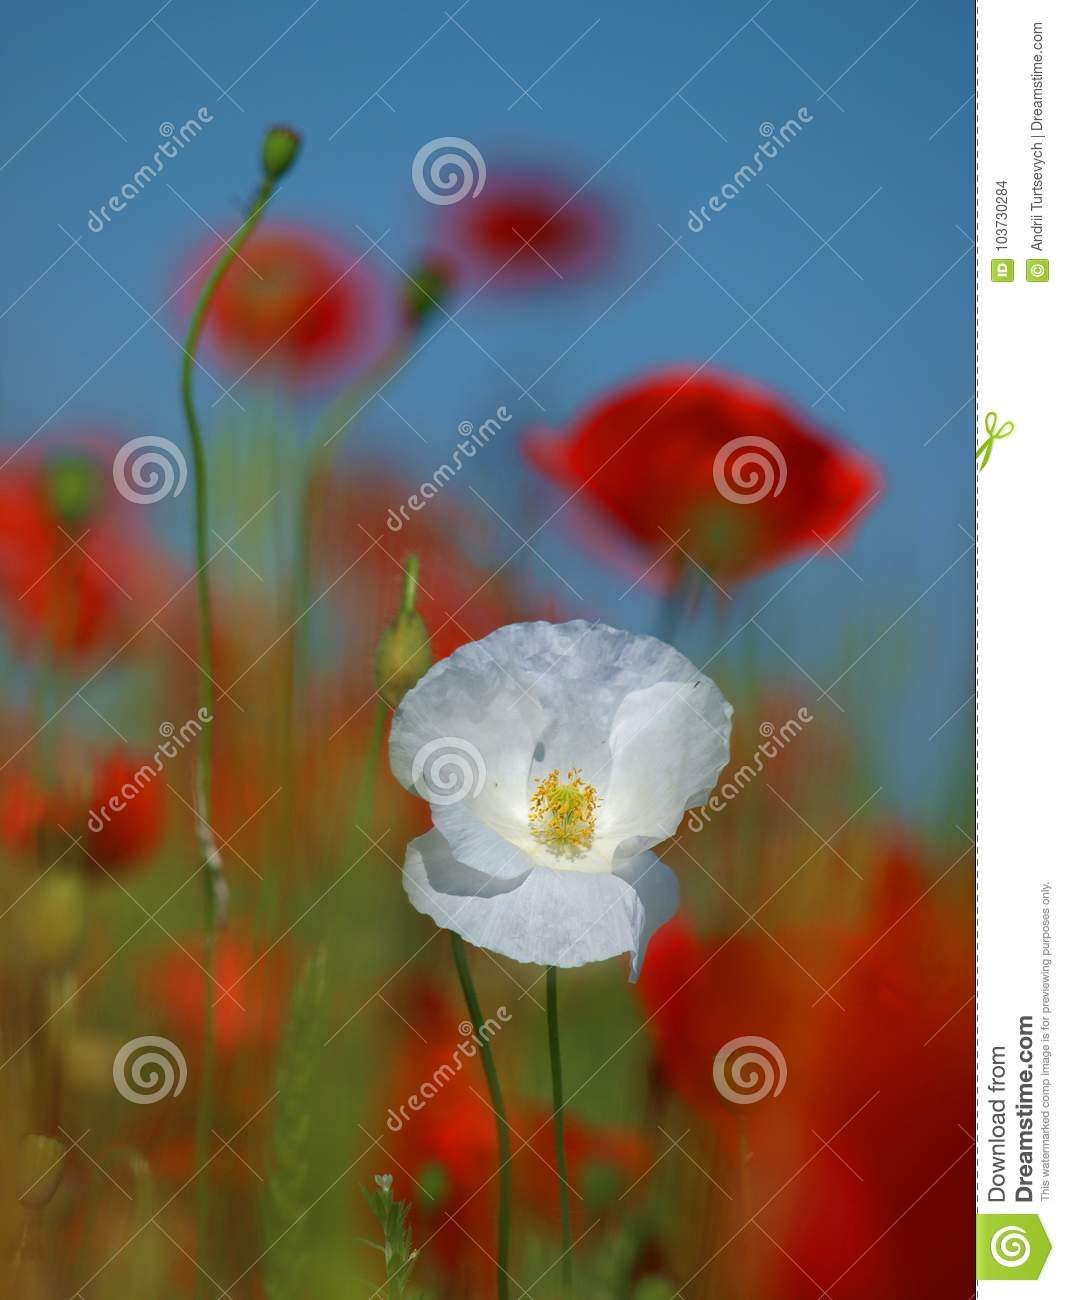 White Poppy Flower On A Blurred Background In The Middle Of A Wheat